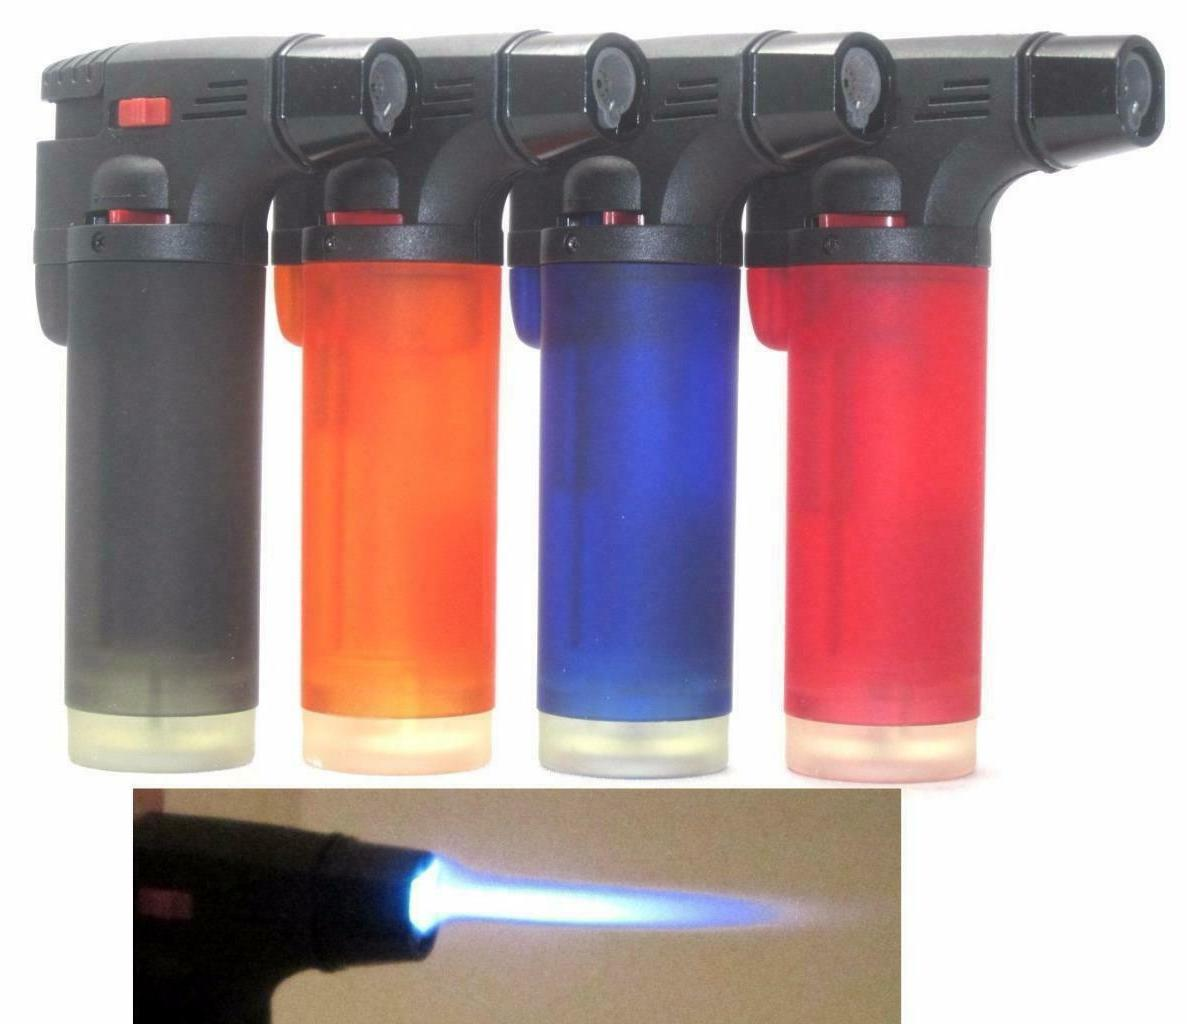 4 Count Wind Proof EAGLE GUN TORCH Lighters Adjustable Refil